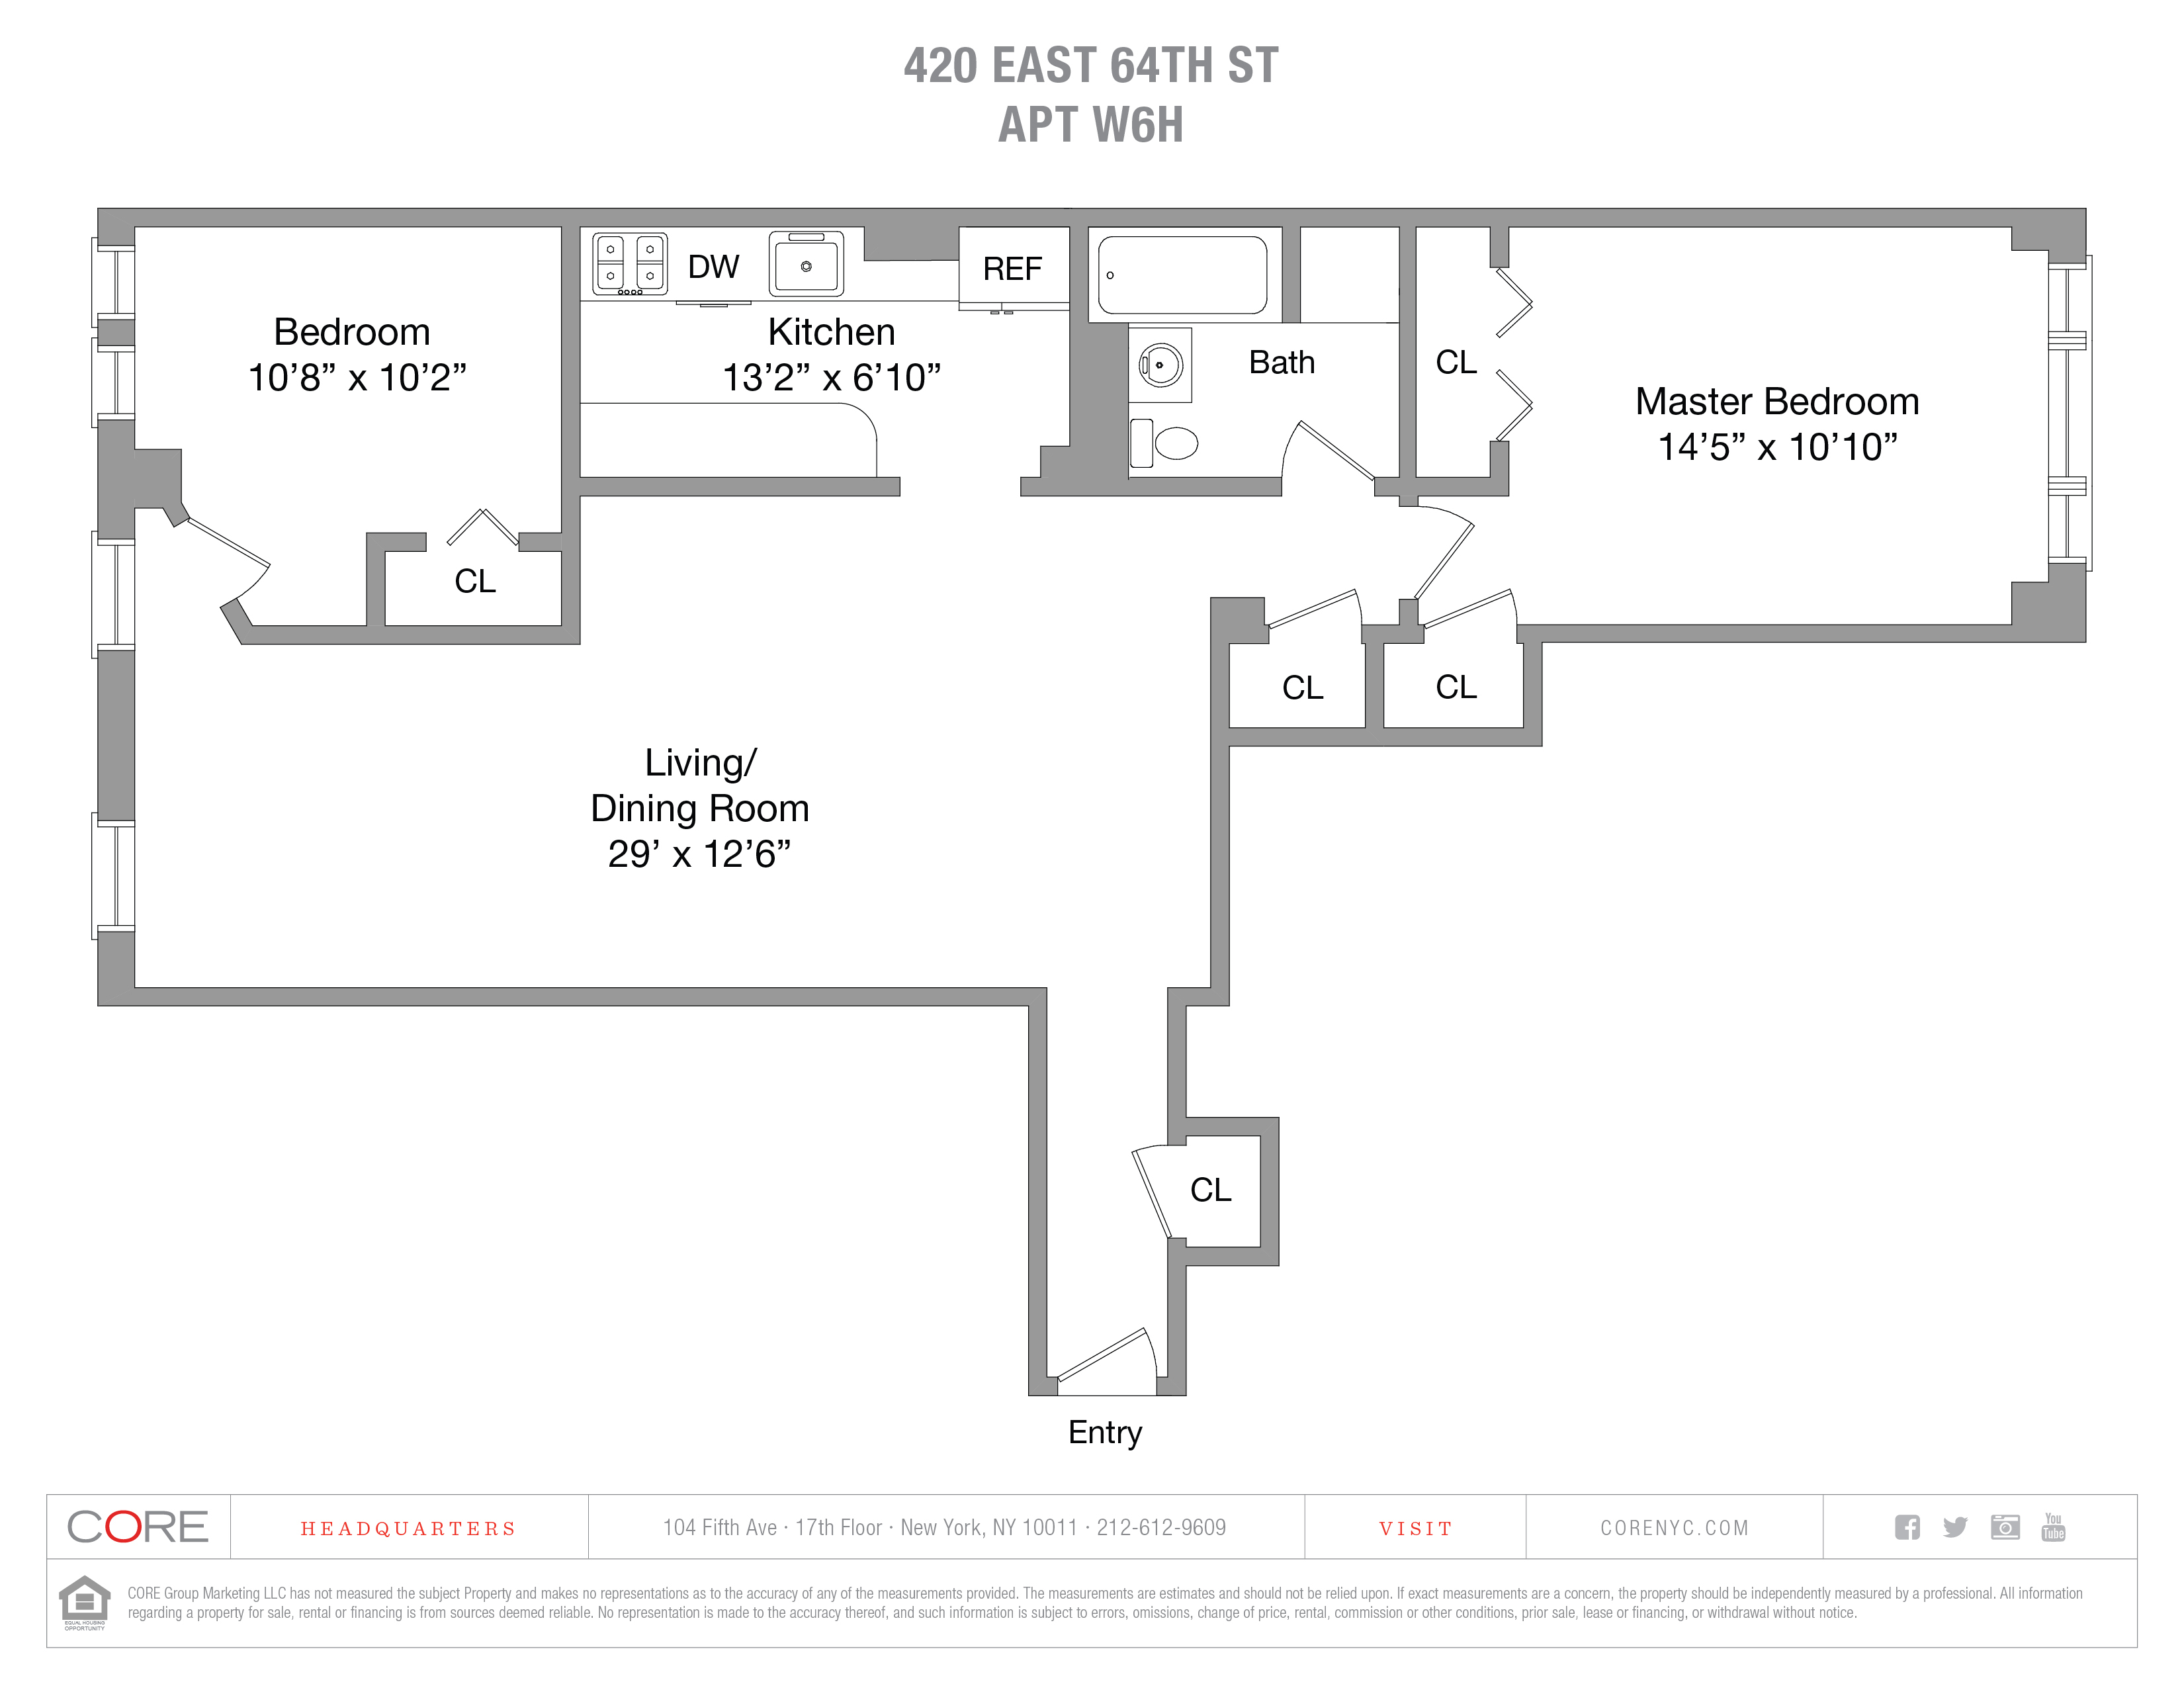 420 East 64th St. W6H, New York, NY 10065